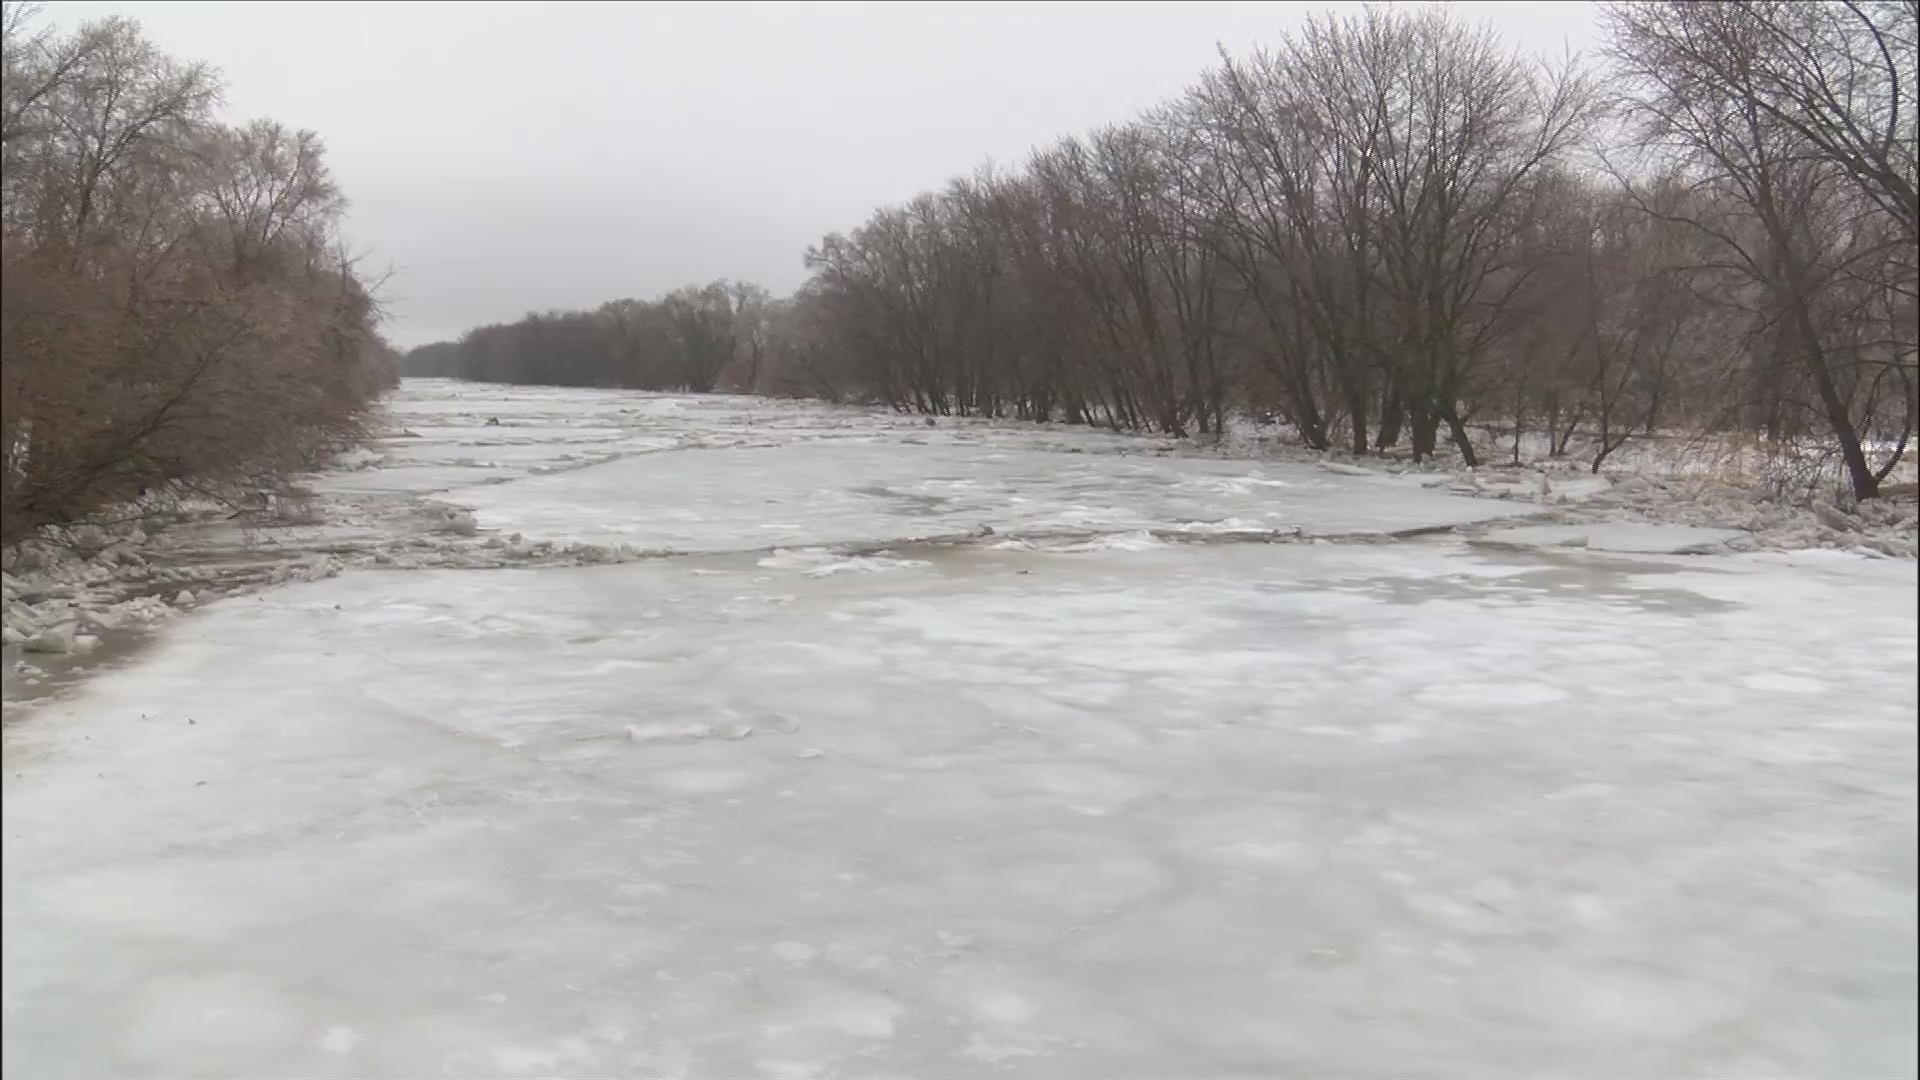 More flooding expected as Colona ice jam moves down river